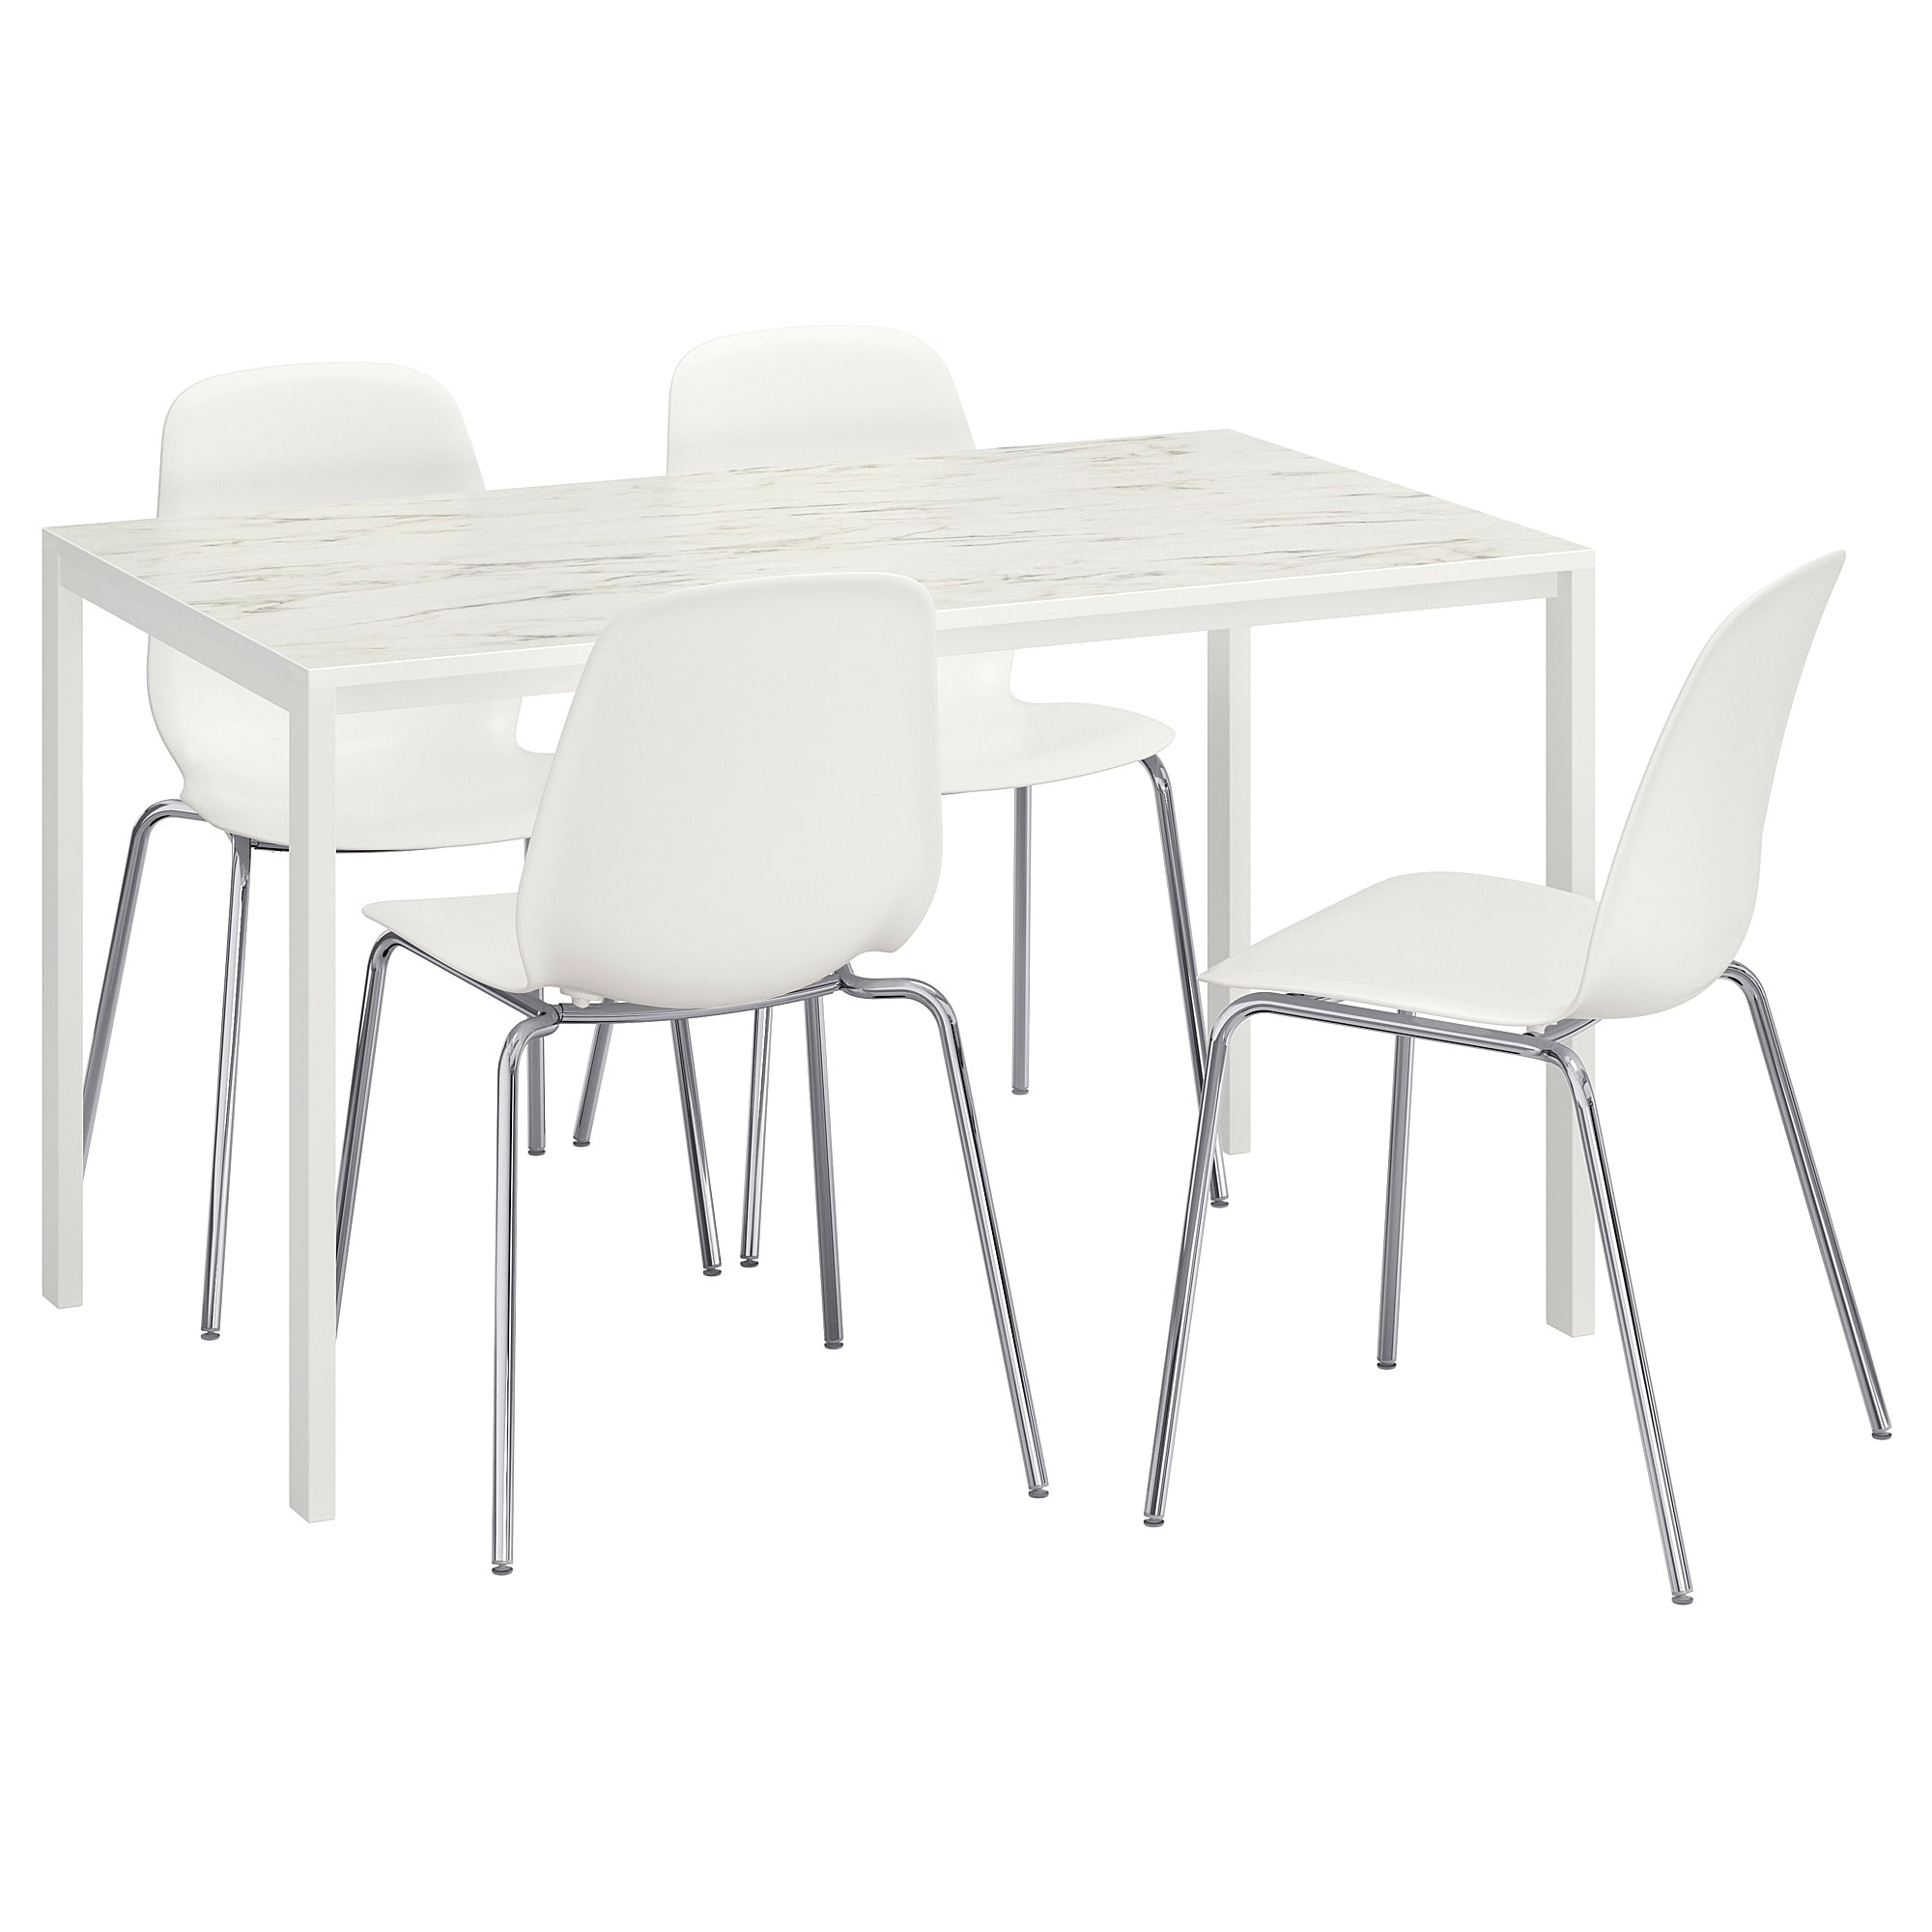 Melltorp/leifarne Table And 4 Chairs White Marble Effect/chrome Inside Most Popular Marble Effect Dining Tables And Chairs (View 19 of 25)